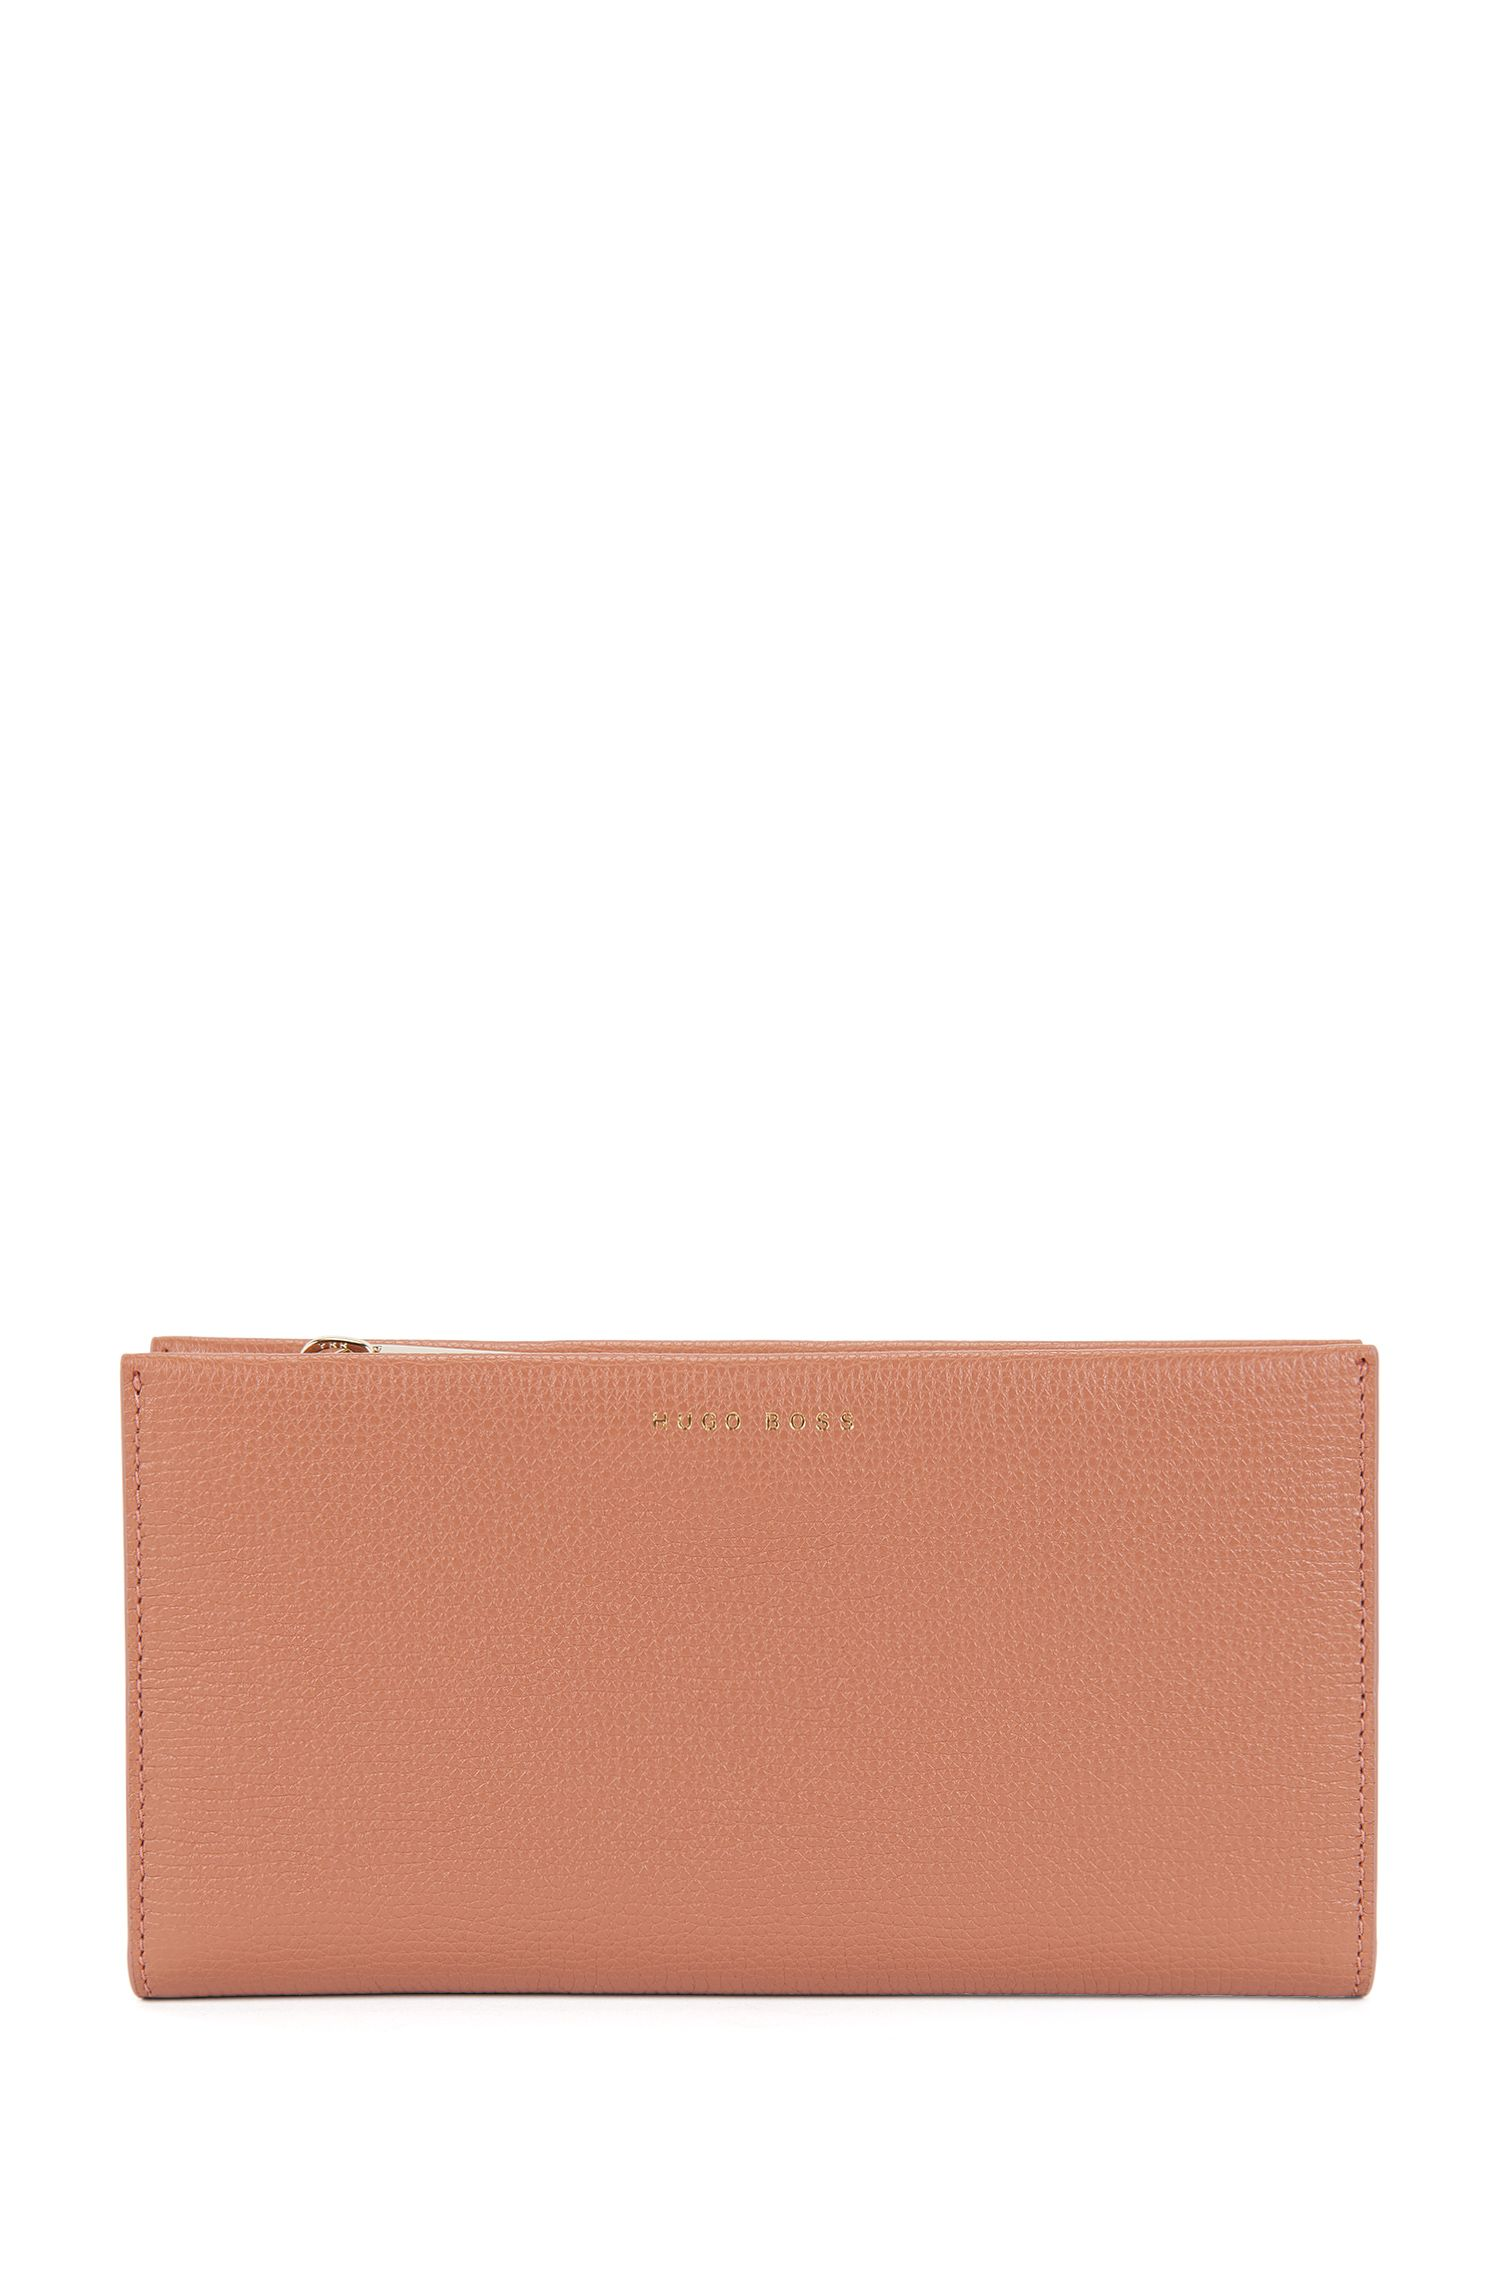 Ziparound wallet in grained calfskin leather